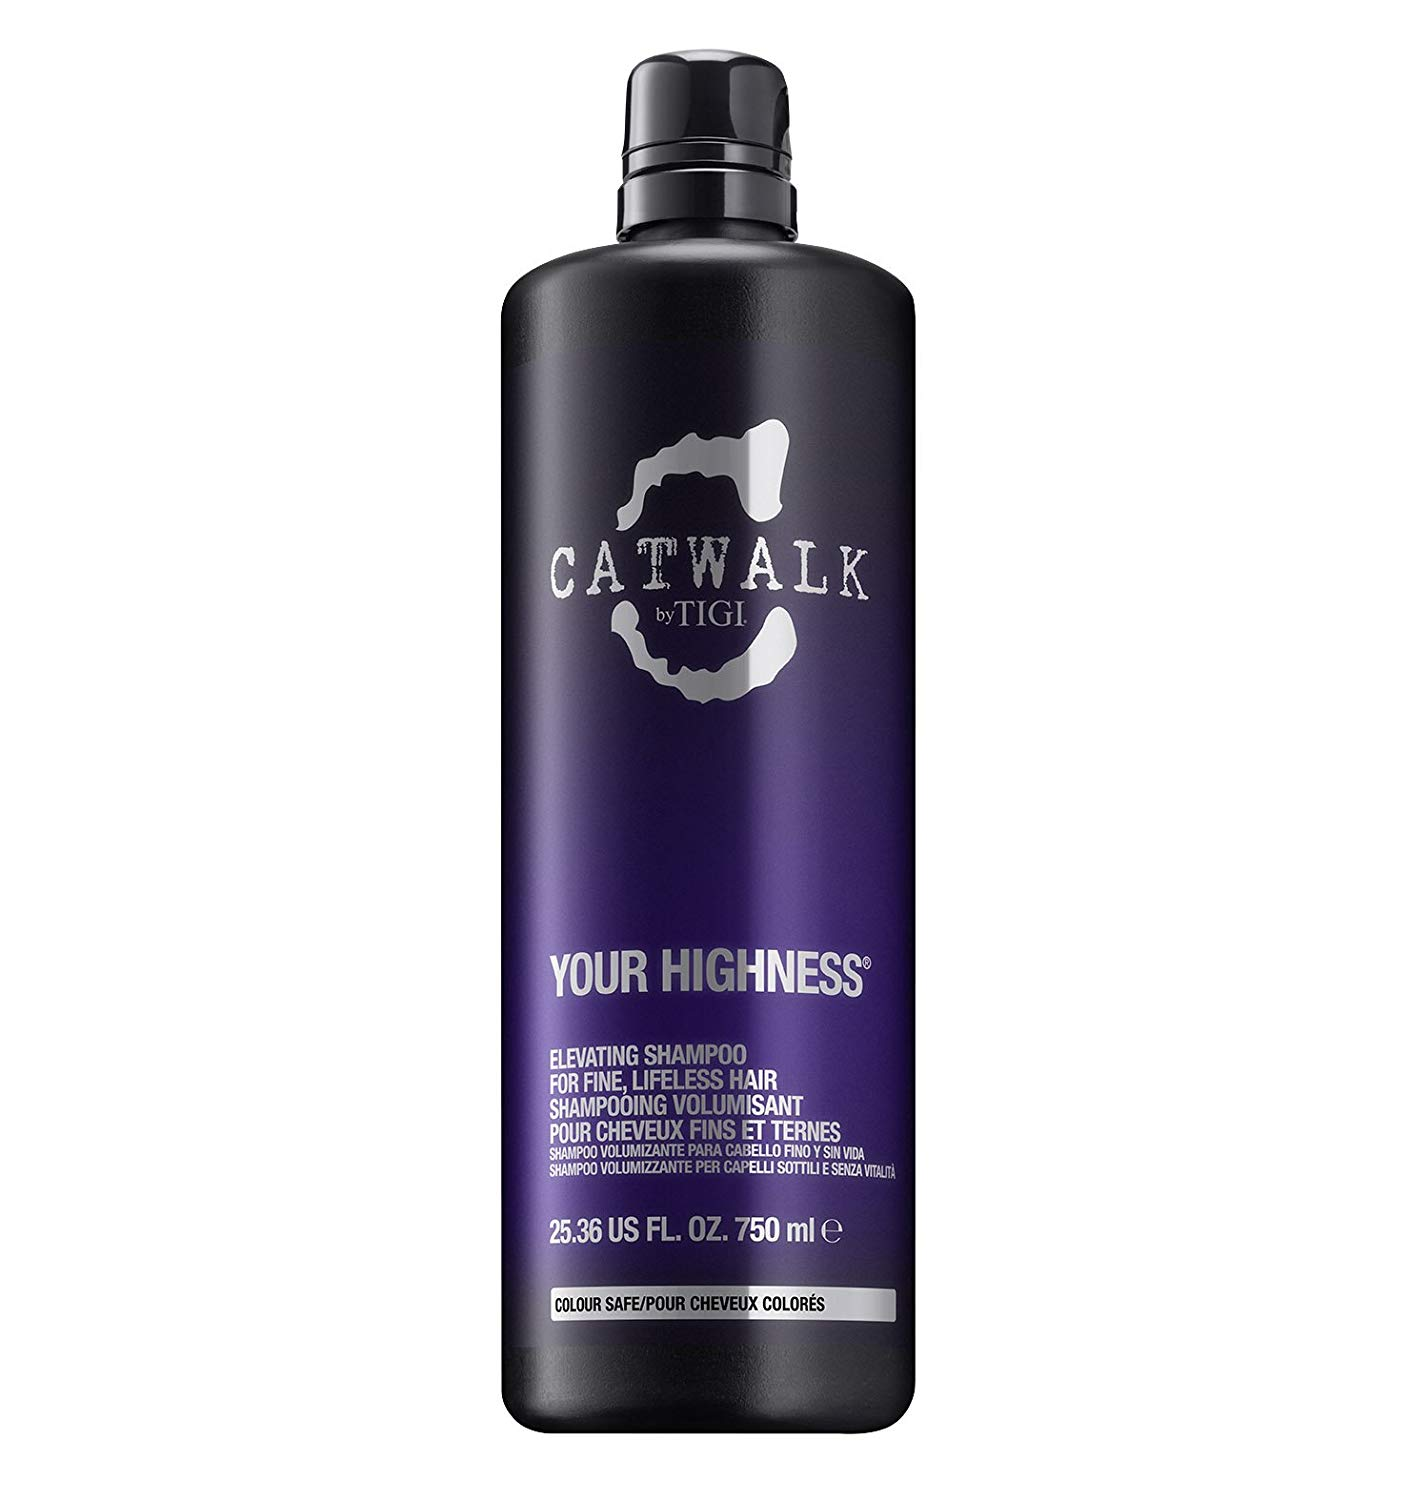 Catwalk Your Highness Shampoo - 25.36 Fluid Ounce